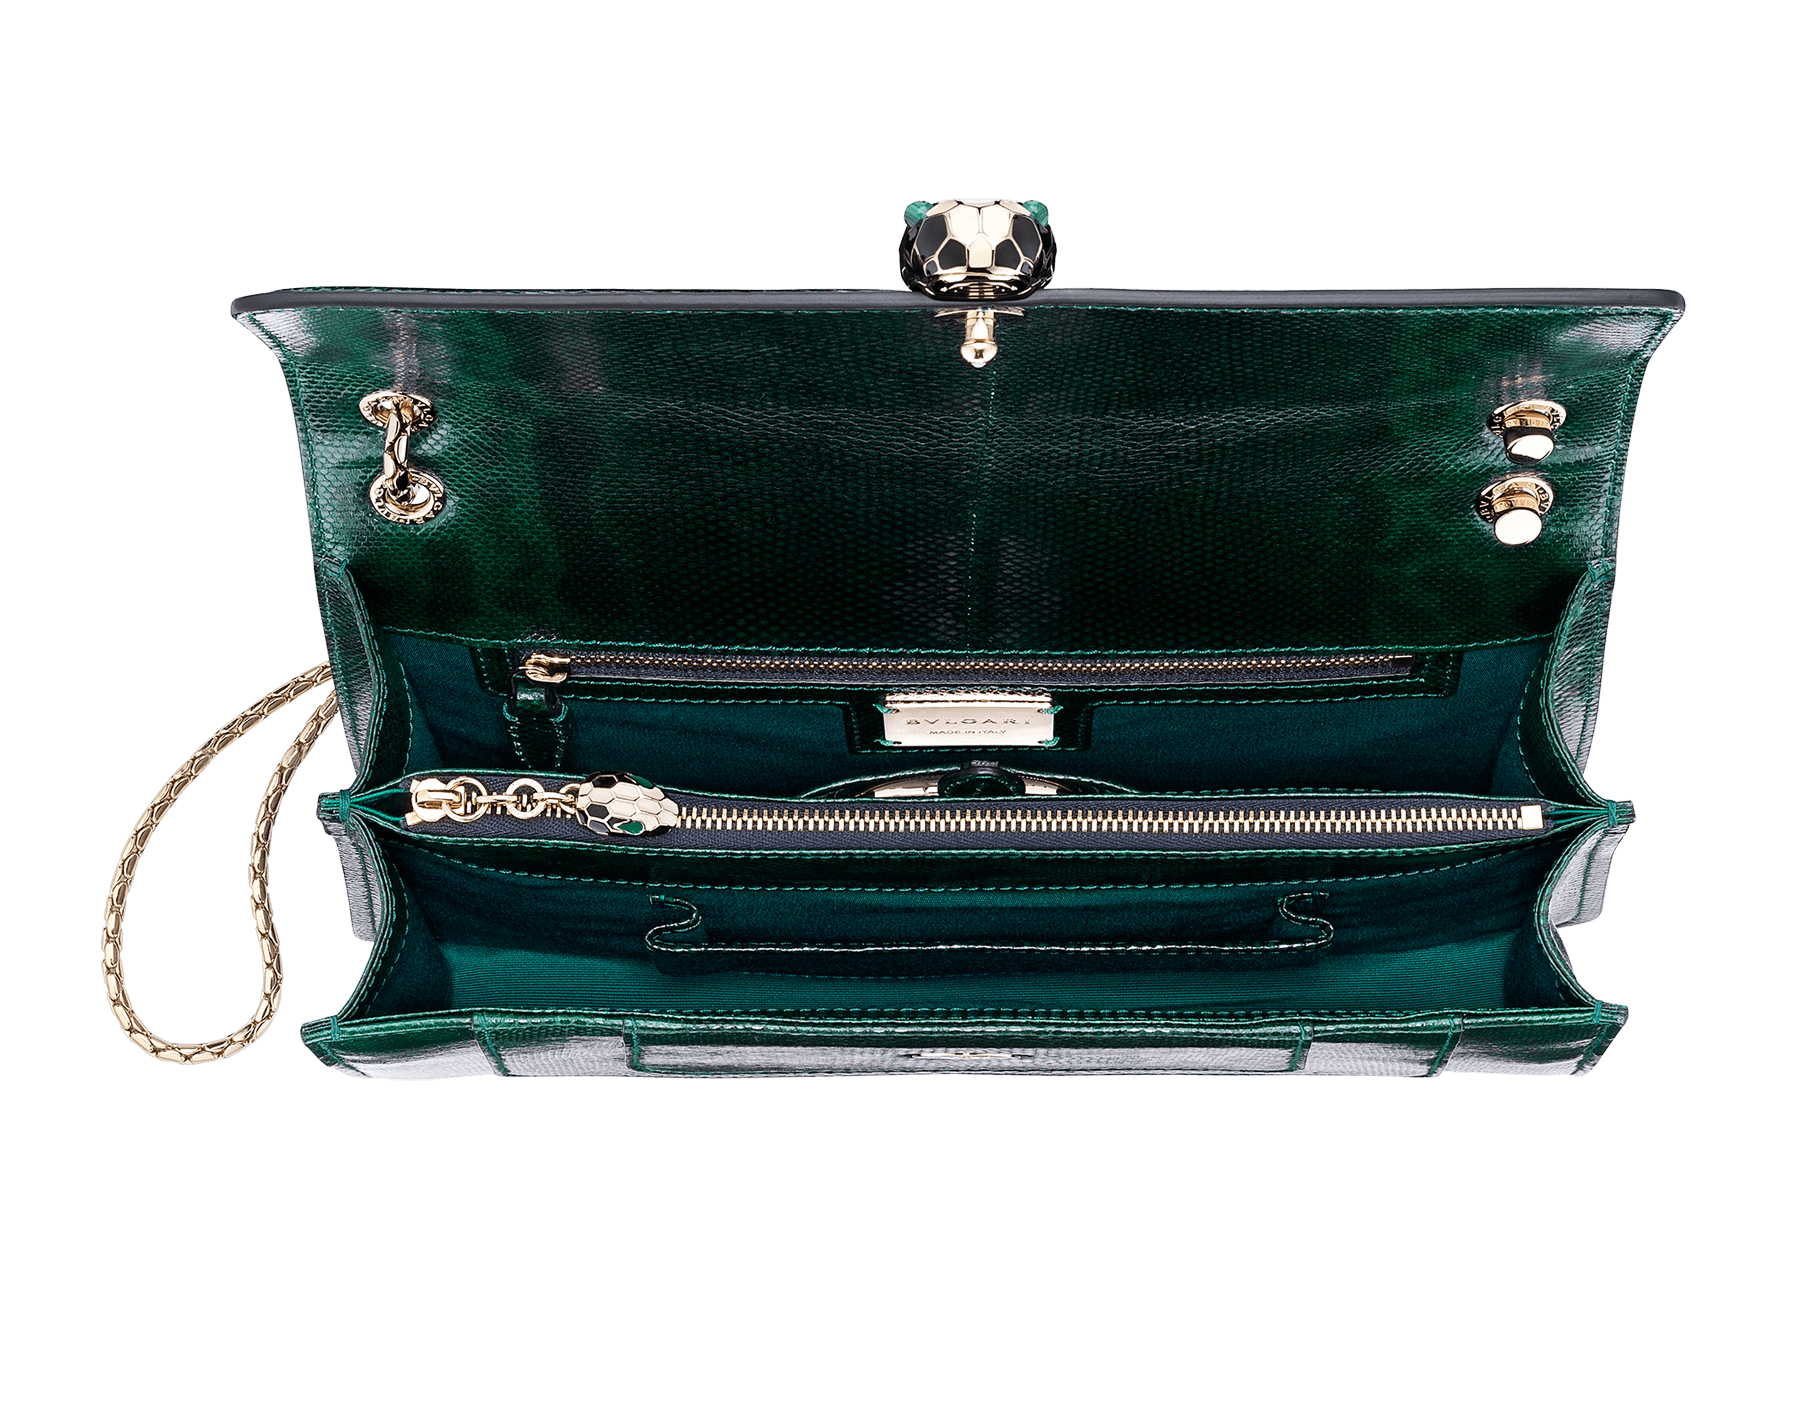 Flap cover bag Serpenti Forever in roman garnet shiny karung skin. Brass light gold plated tempting snake head closure in shiny black and white enamel, with eyes in green malachite. 521-SK image 5